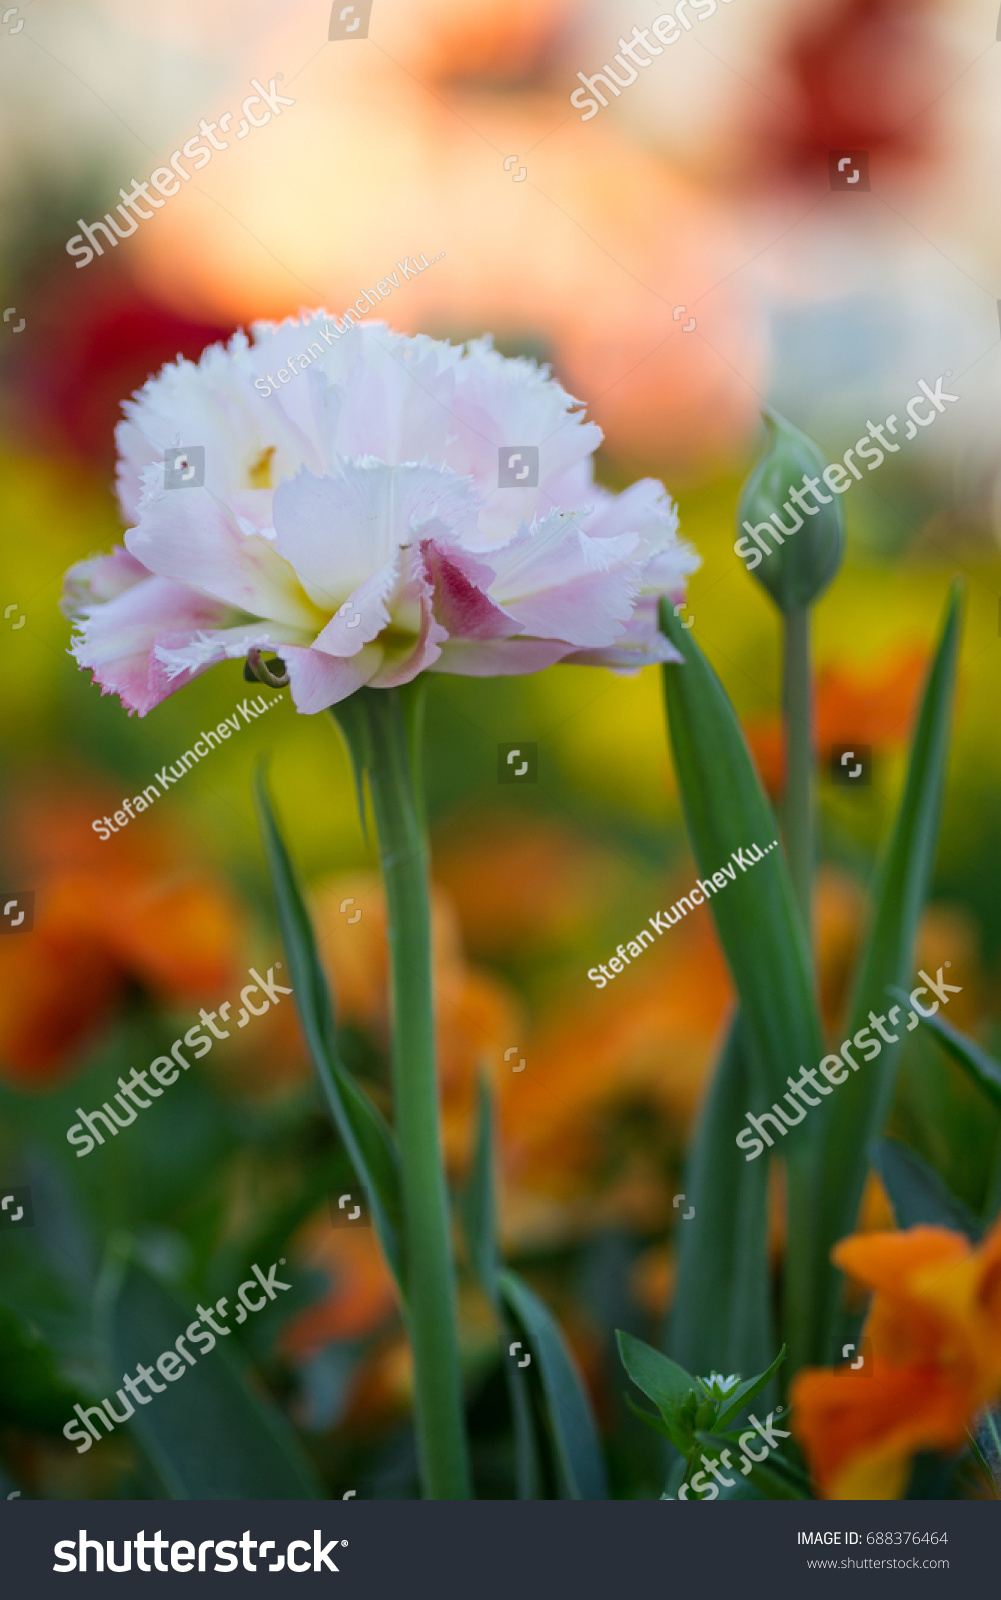 Garden Spring Flowers Beautiful Pink Tulip Stock Photo (Royalty Free ...